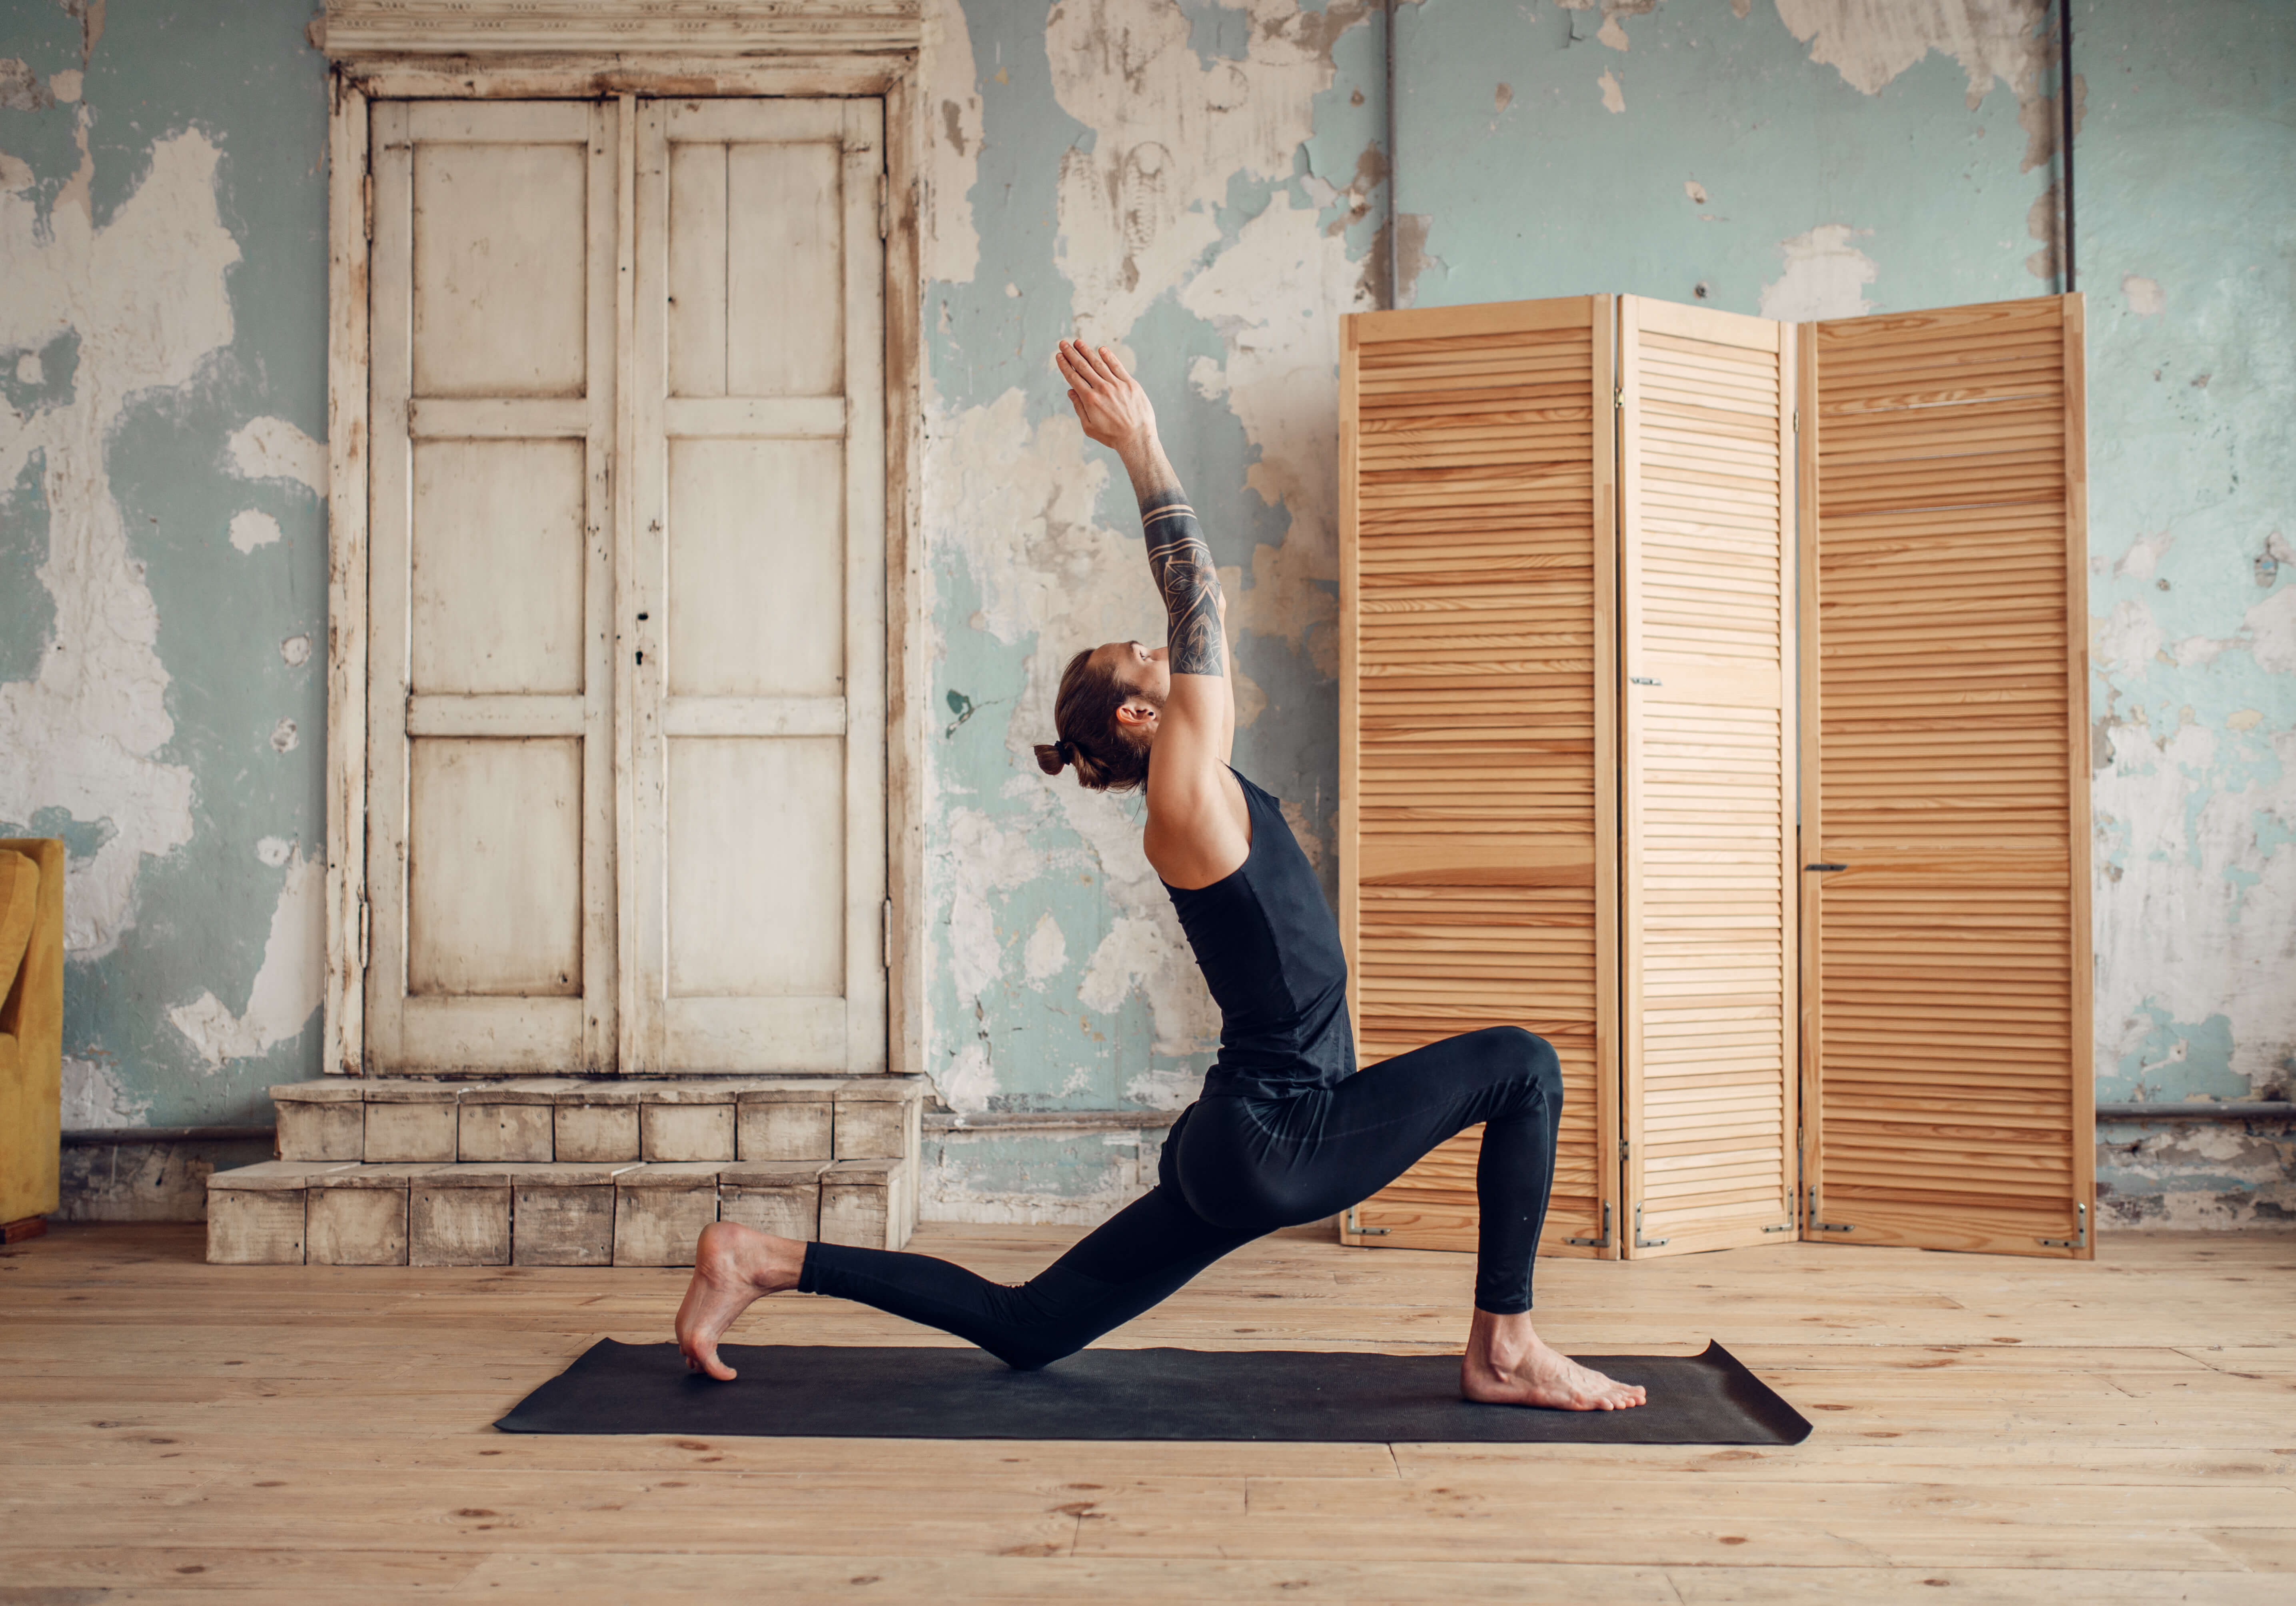 Male yoga with tattoo on hand doing exercise in gym with grunge interior. Fitness training indoors